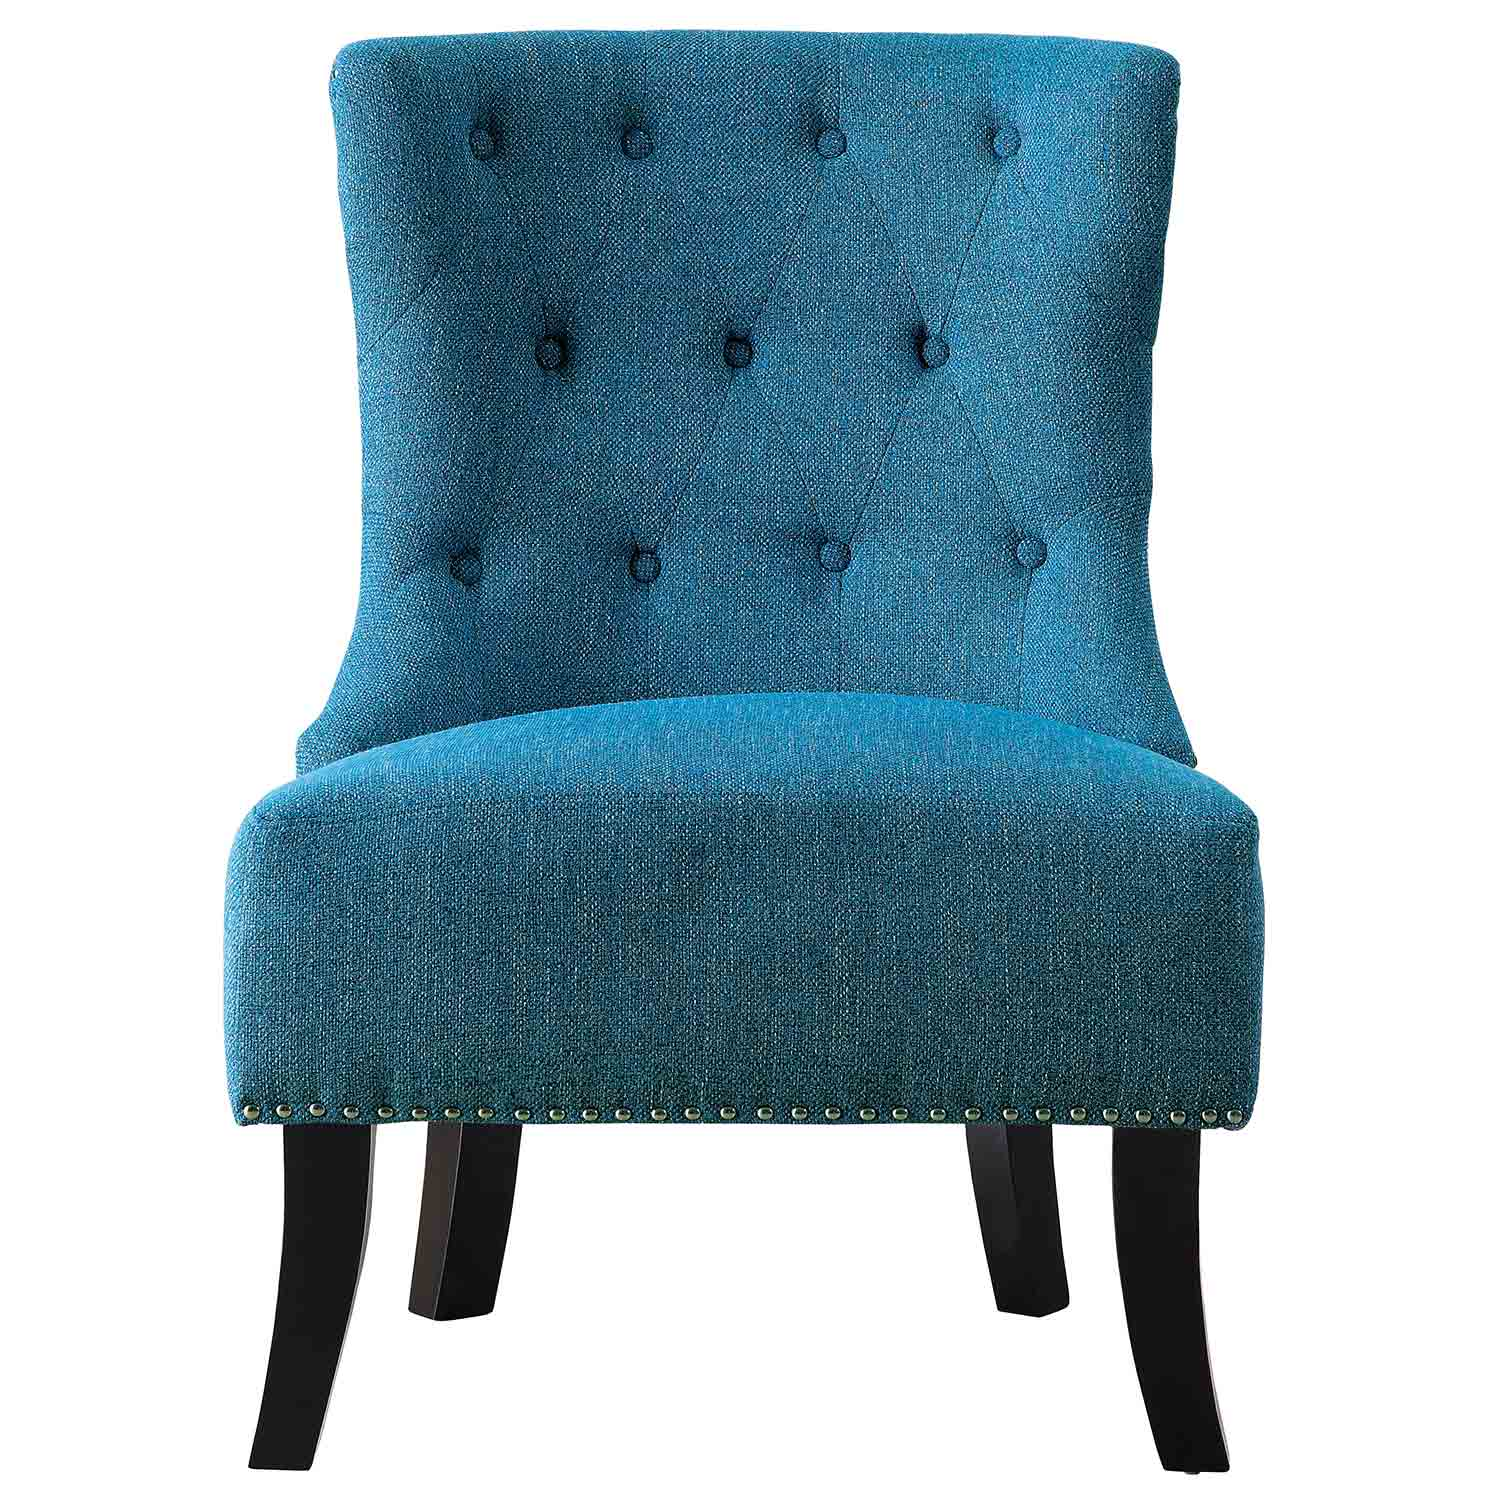 Homelegance Paighton Accent Chair - Blue